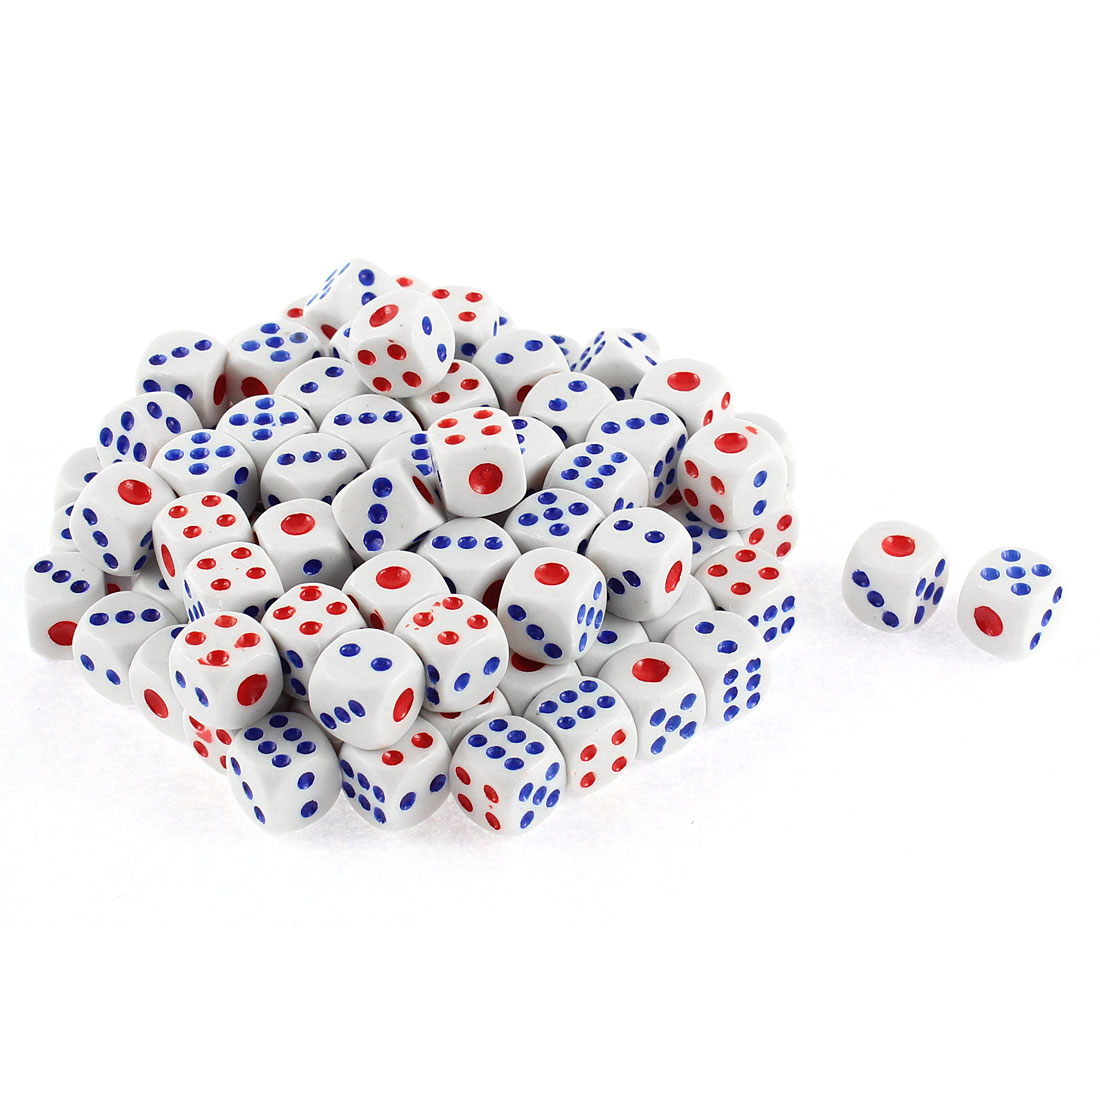 Unique Bargains Game Dices 100 Pcs